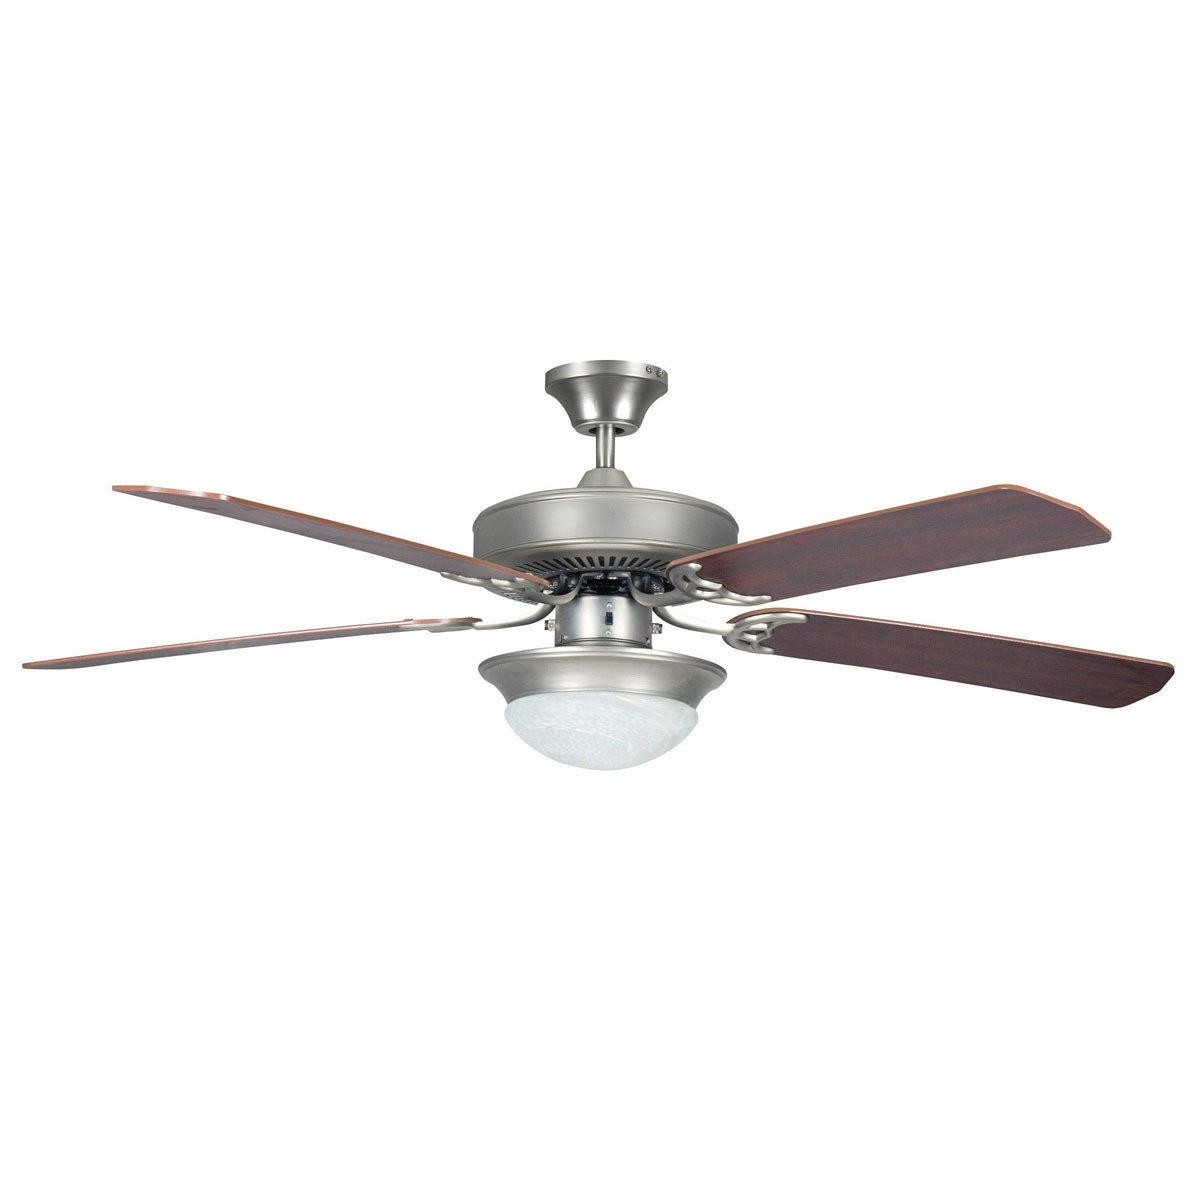 "Concord Fans 52"" Heritage Fusion Satin Nickel Modern Ceiling Fan with Light Kit"